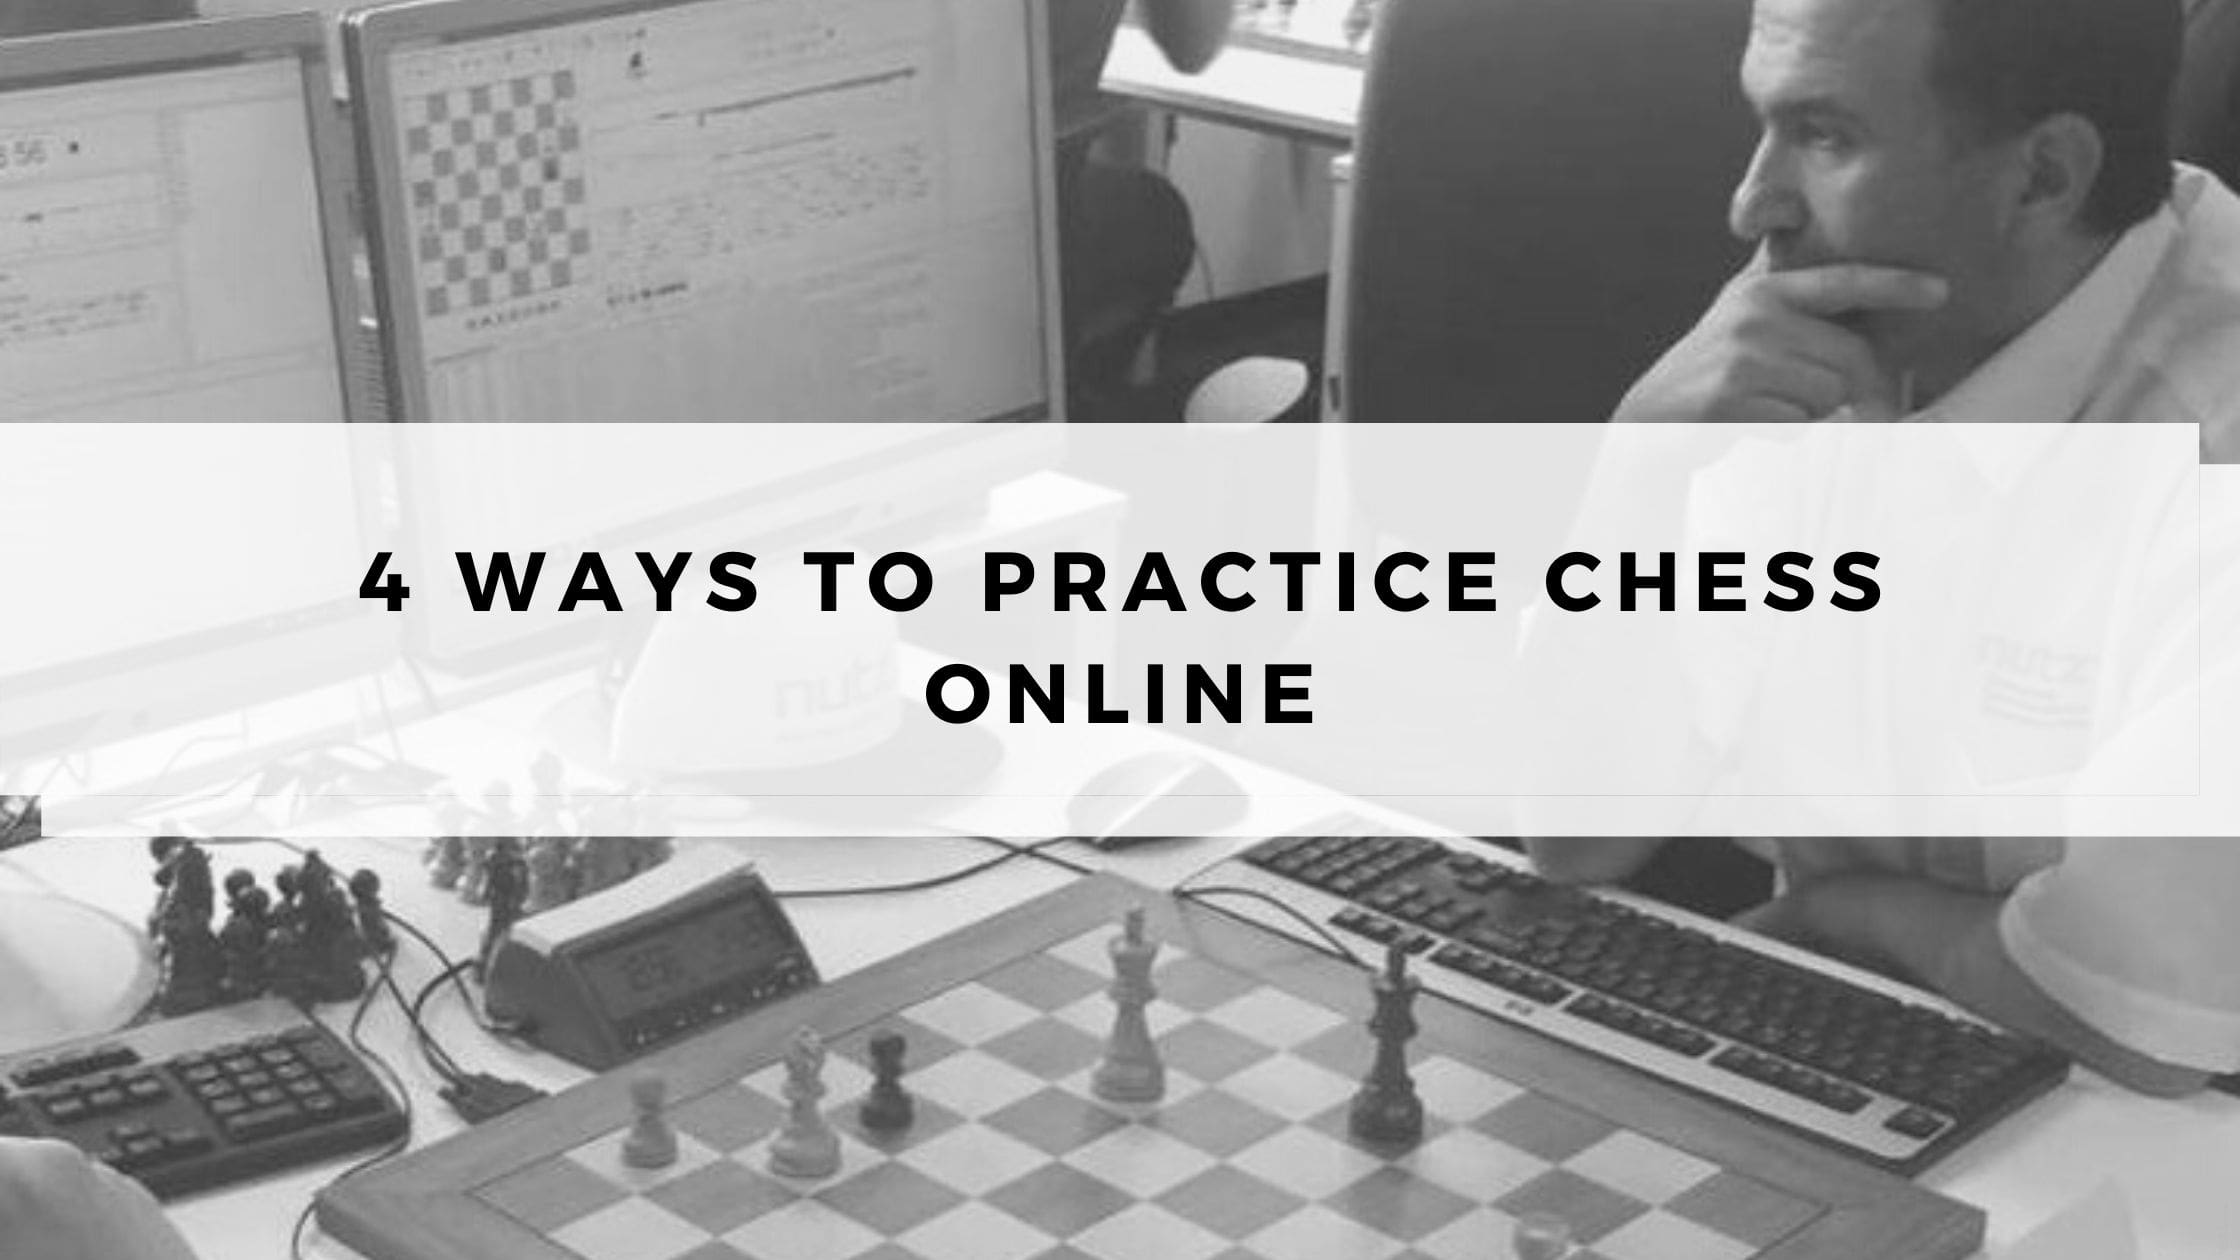 4 Ways to Practice Chess Online